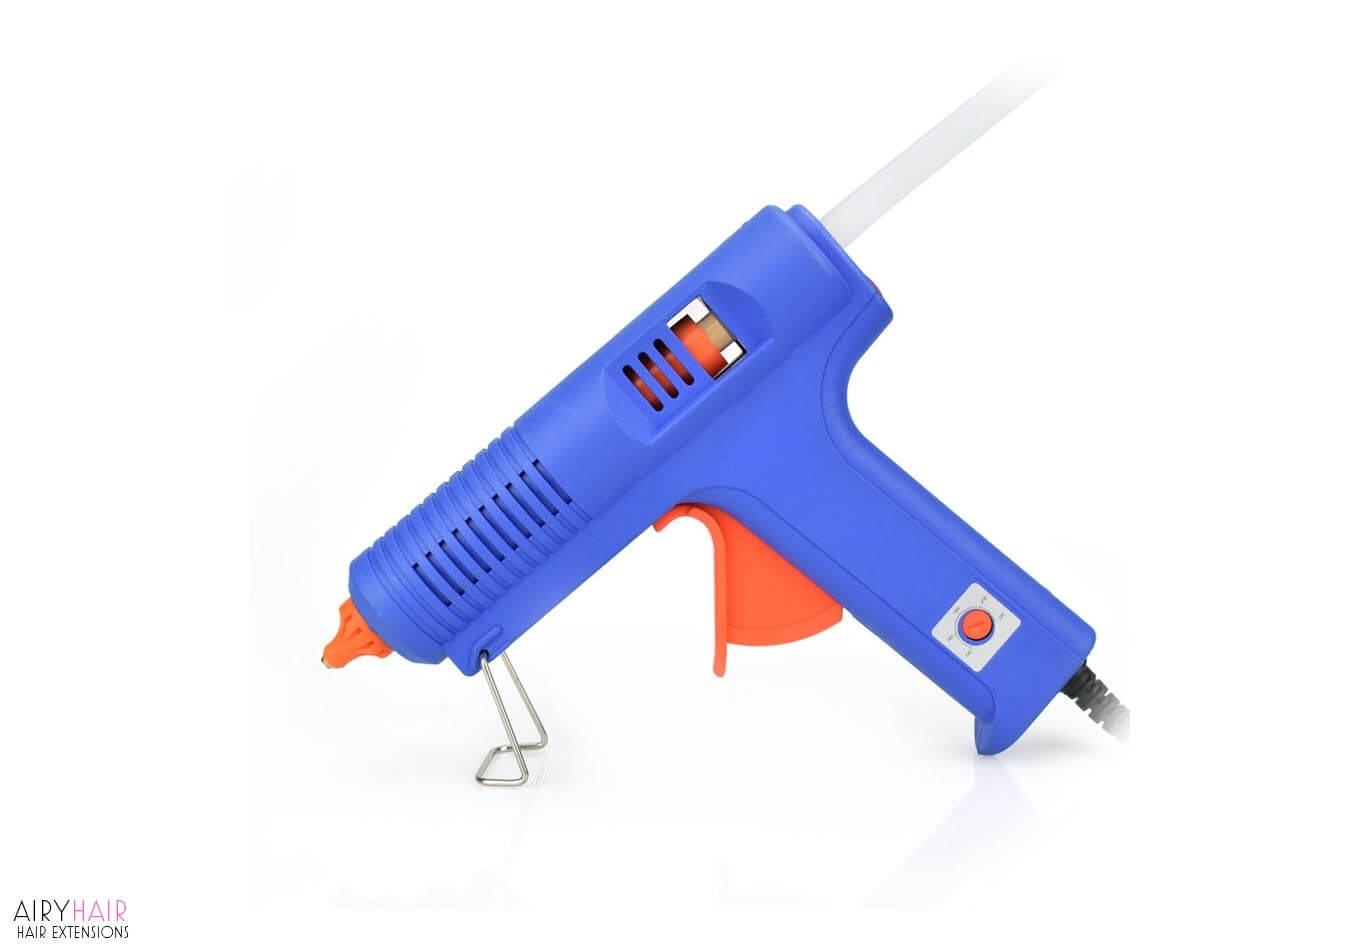 Buy Hot Glue Gun For Stick Hair Extensions